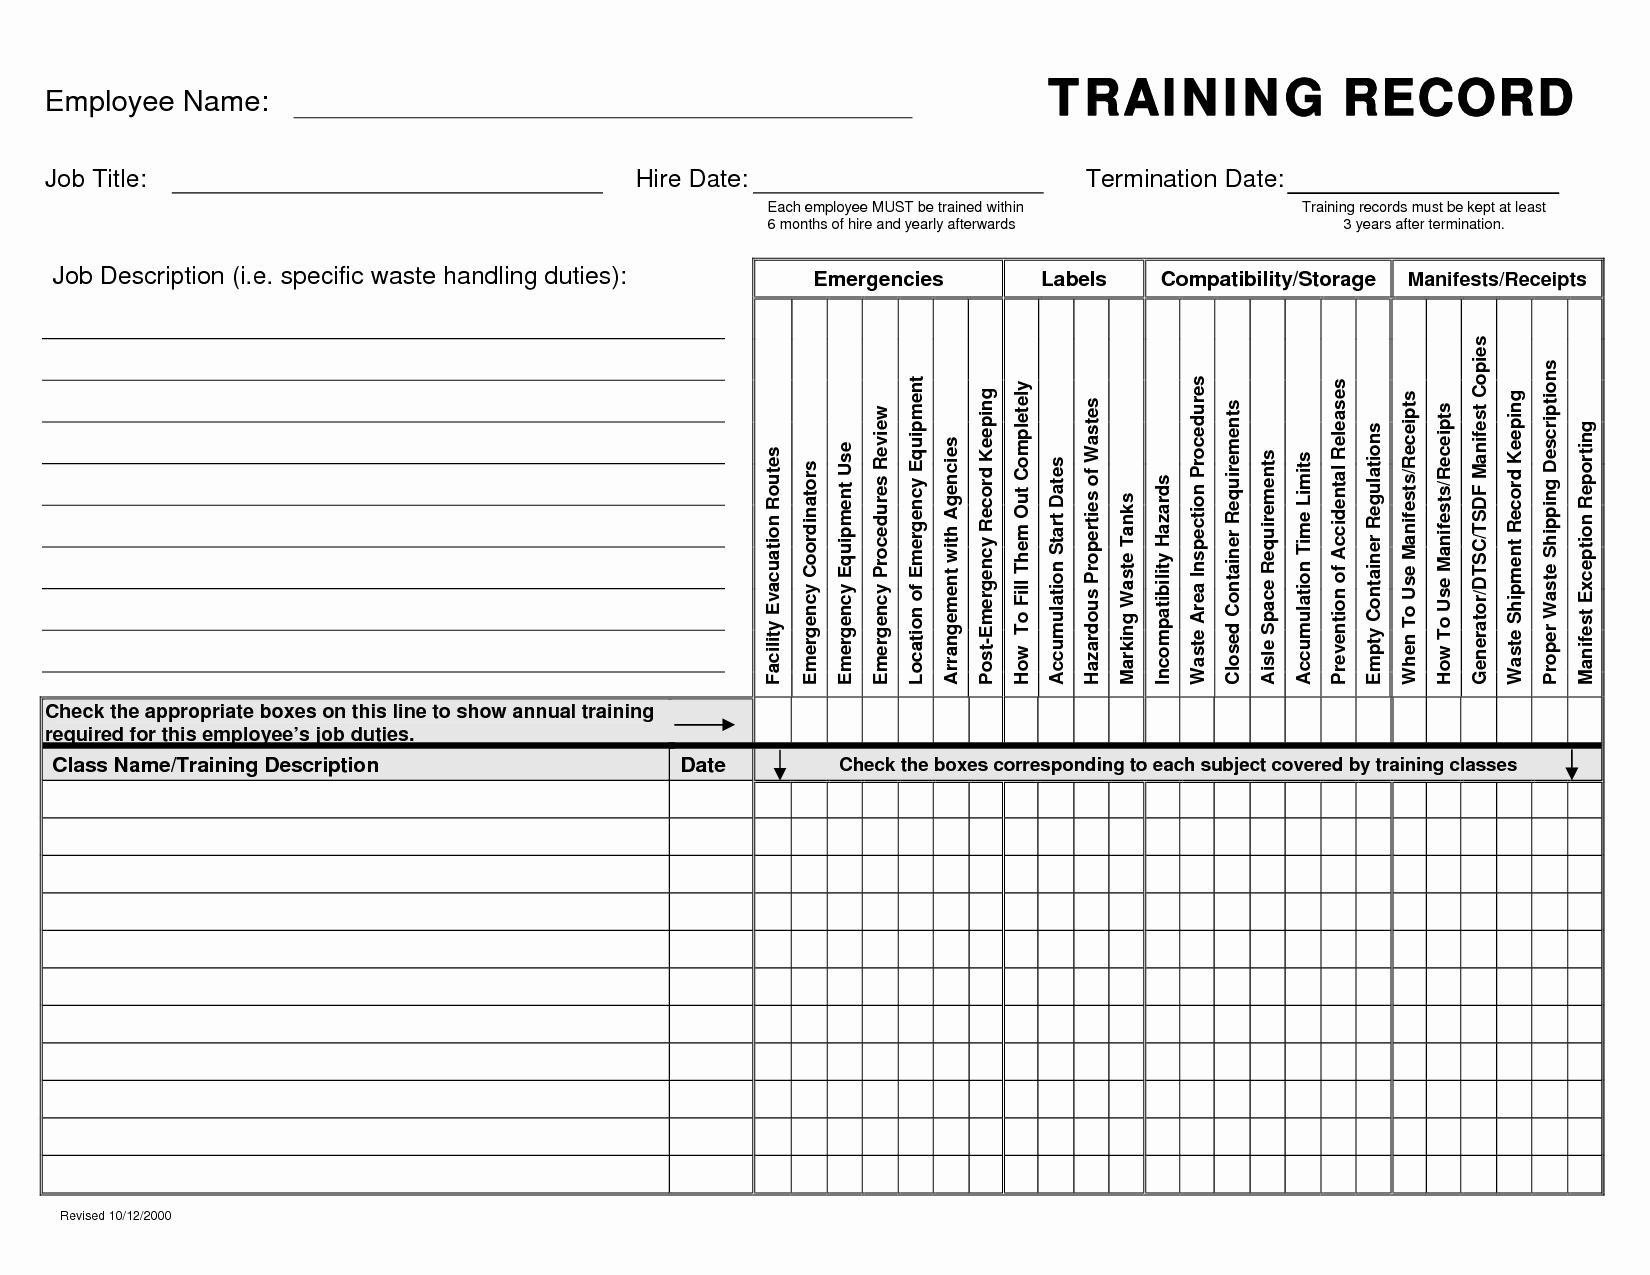 Employee Training Records Template Luxury Training Record Template Baskanai